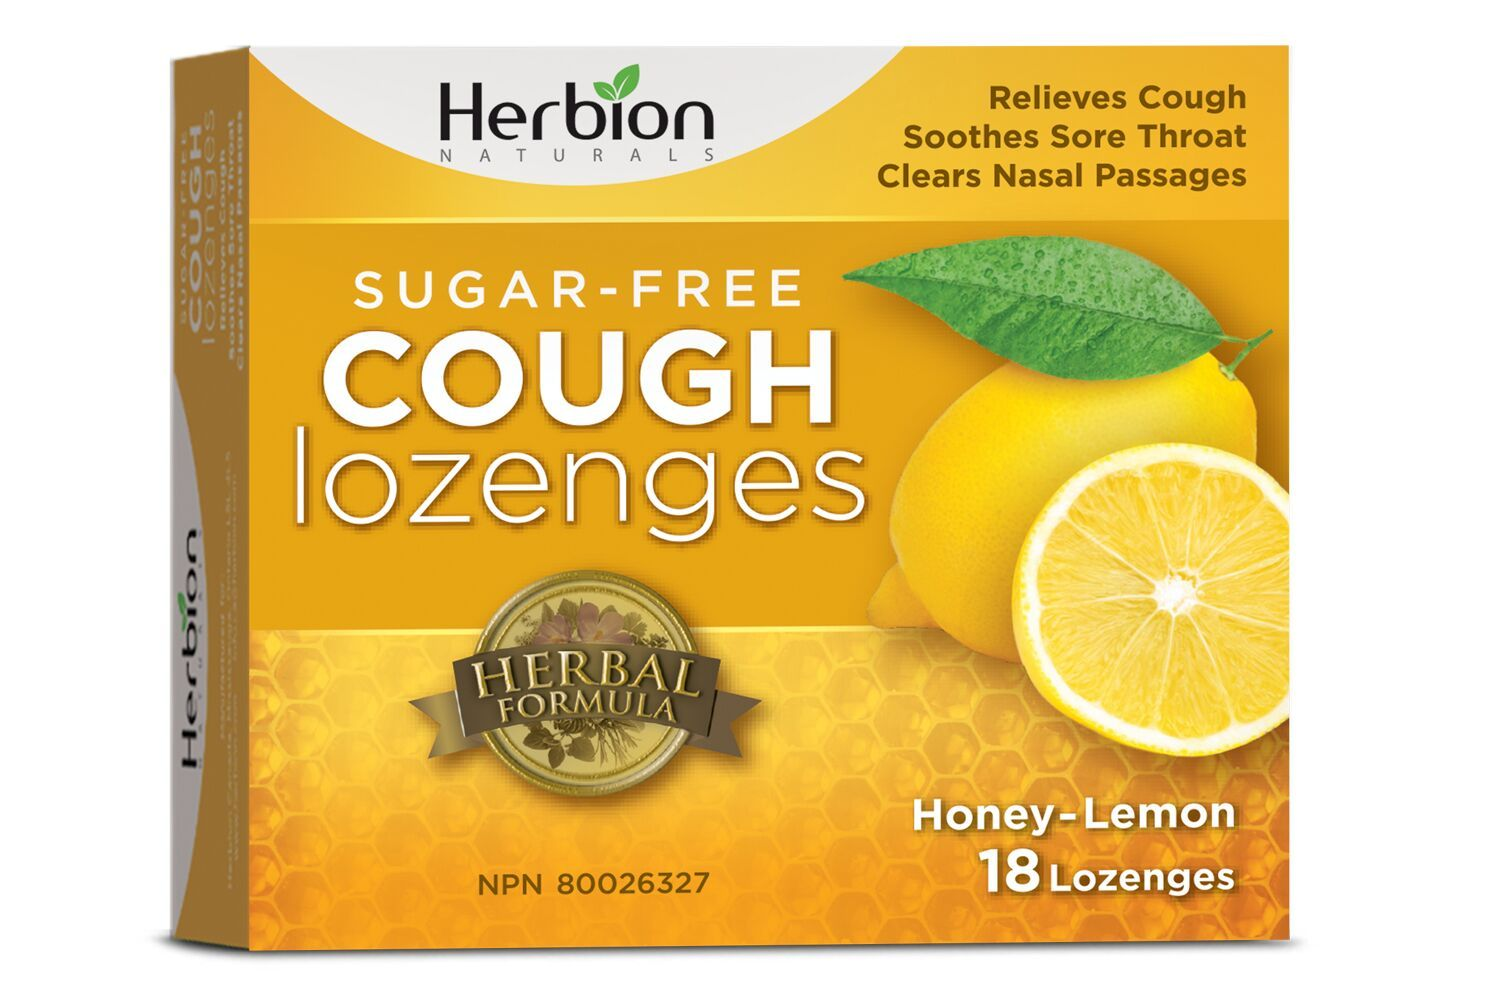 Supplements & Vitamins - Herbion - Sugar-Free Honey Lemon Lozenge, 18 Lozenges